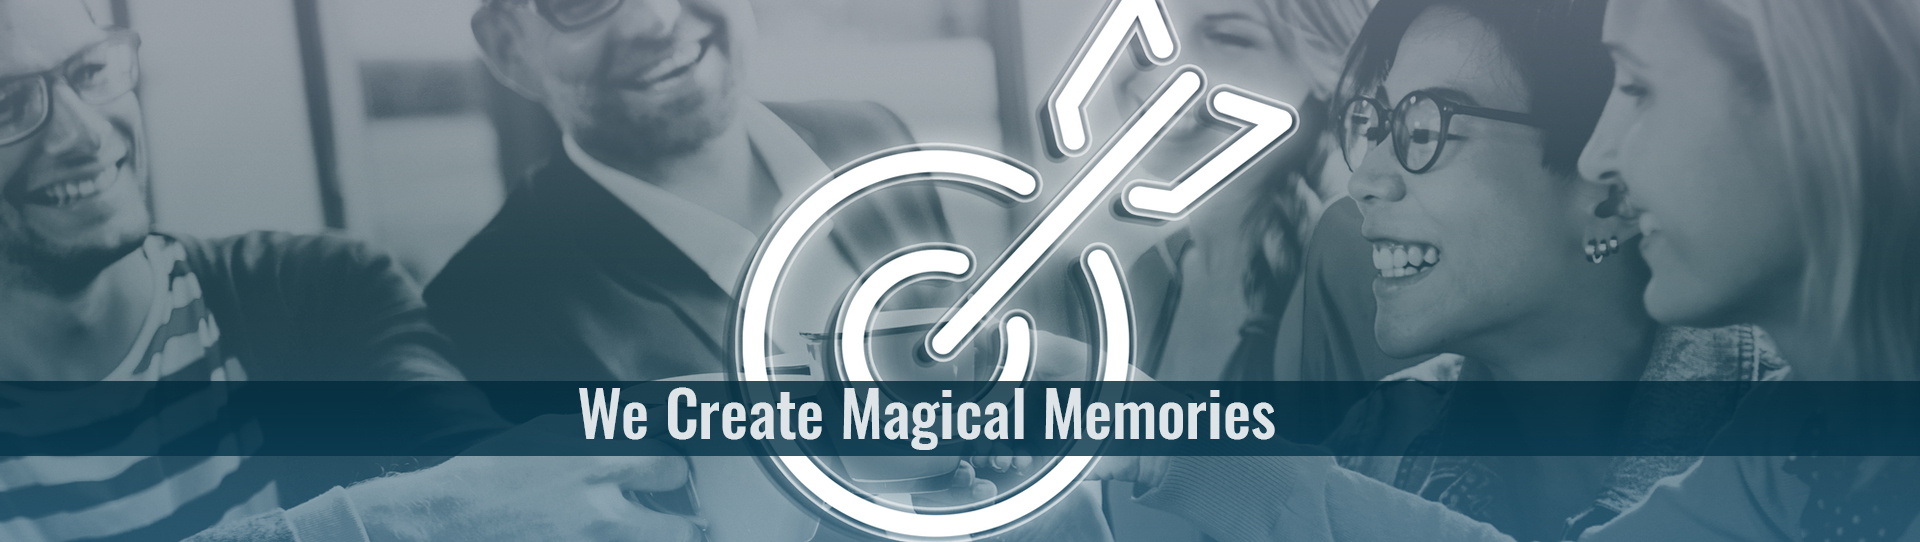 We create magical moments